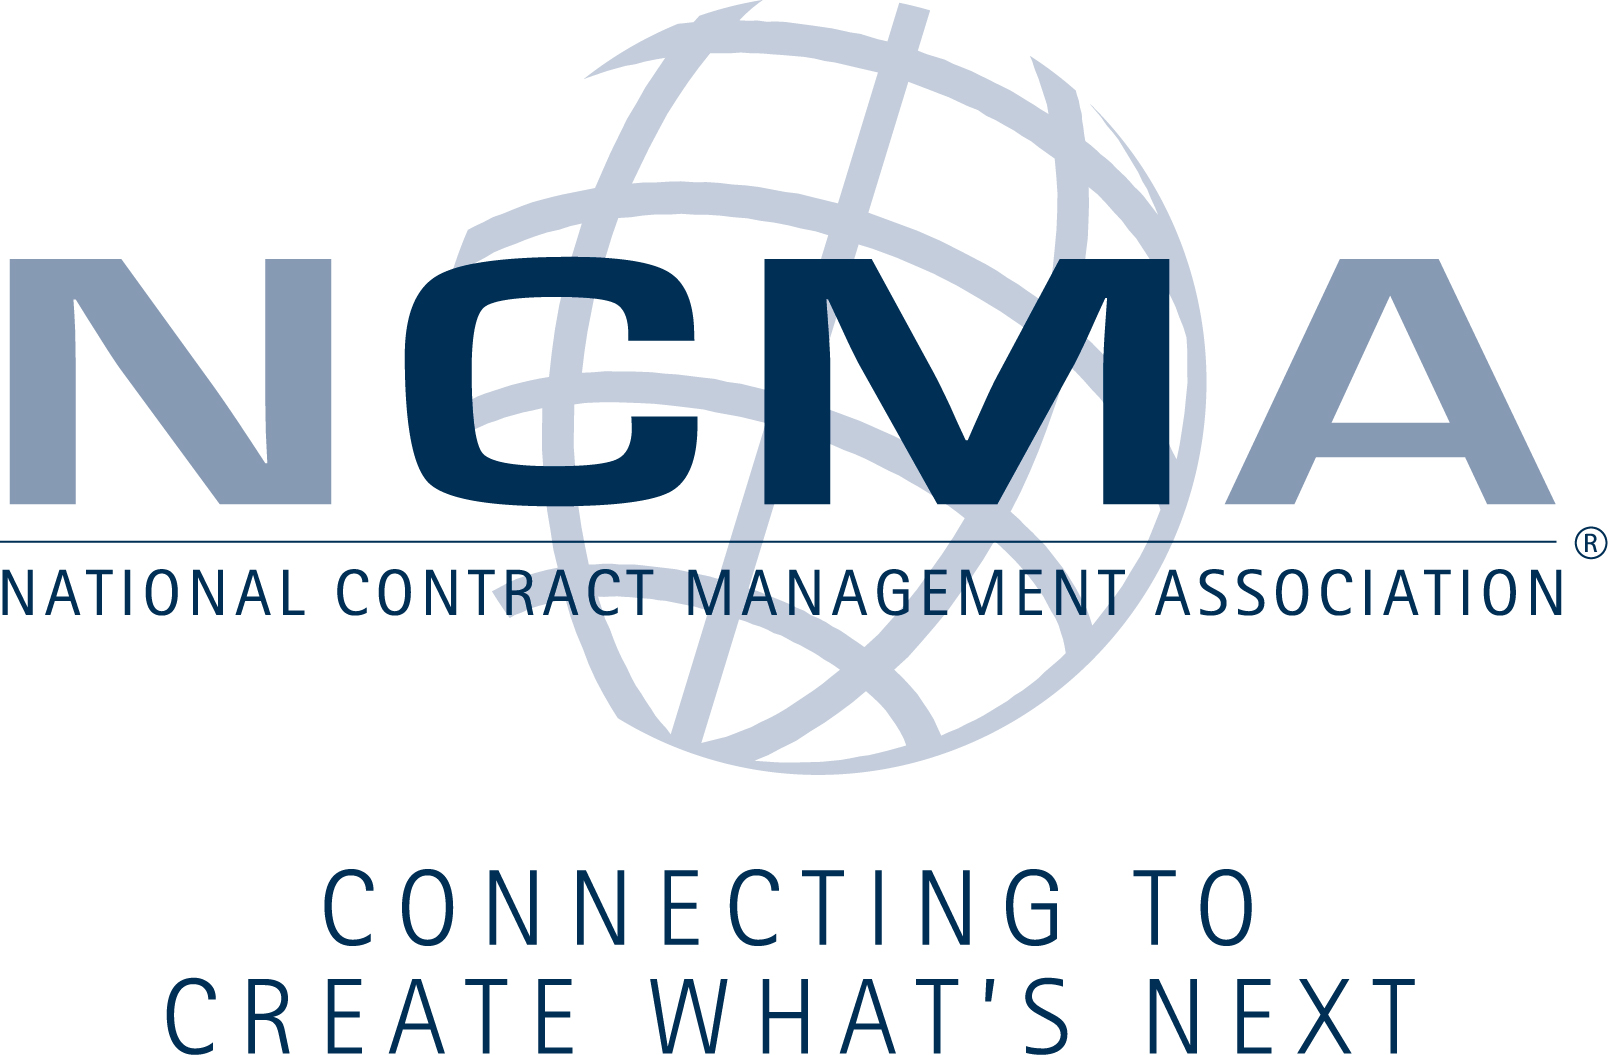 National Contract Management Association Help Center home page